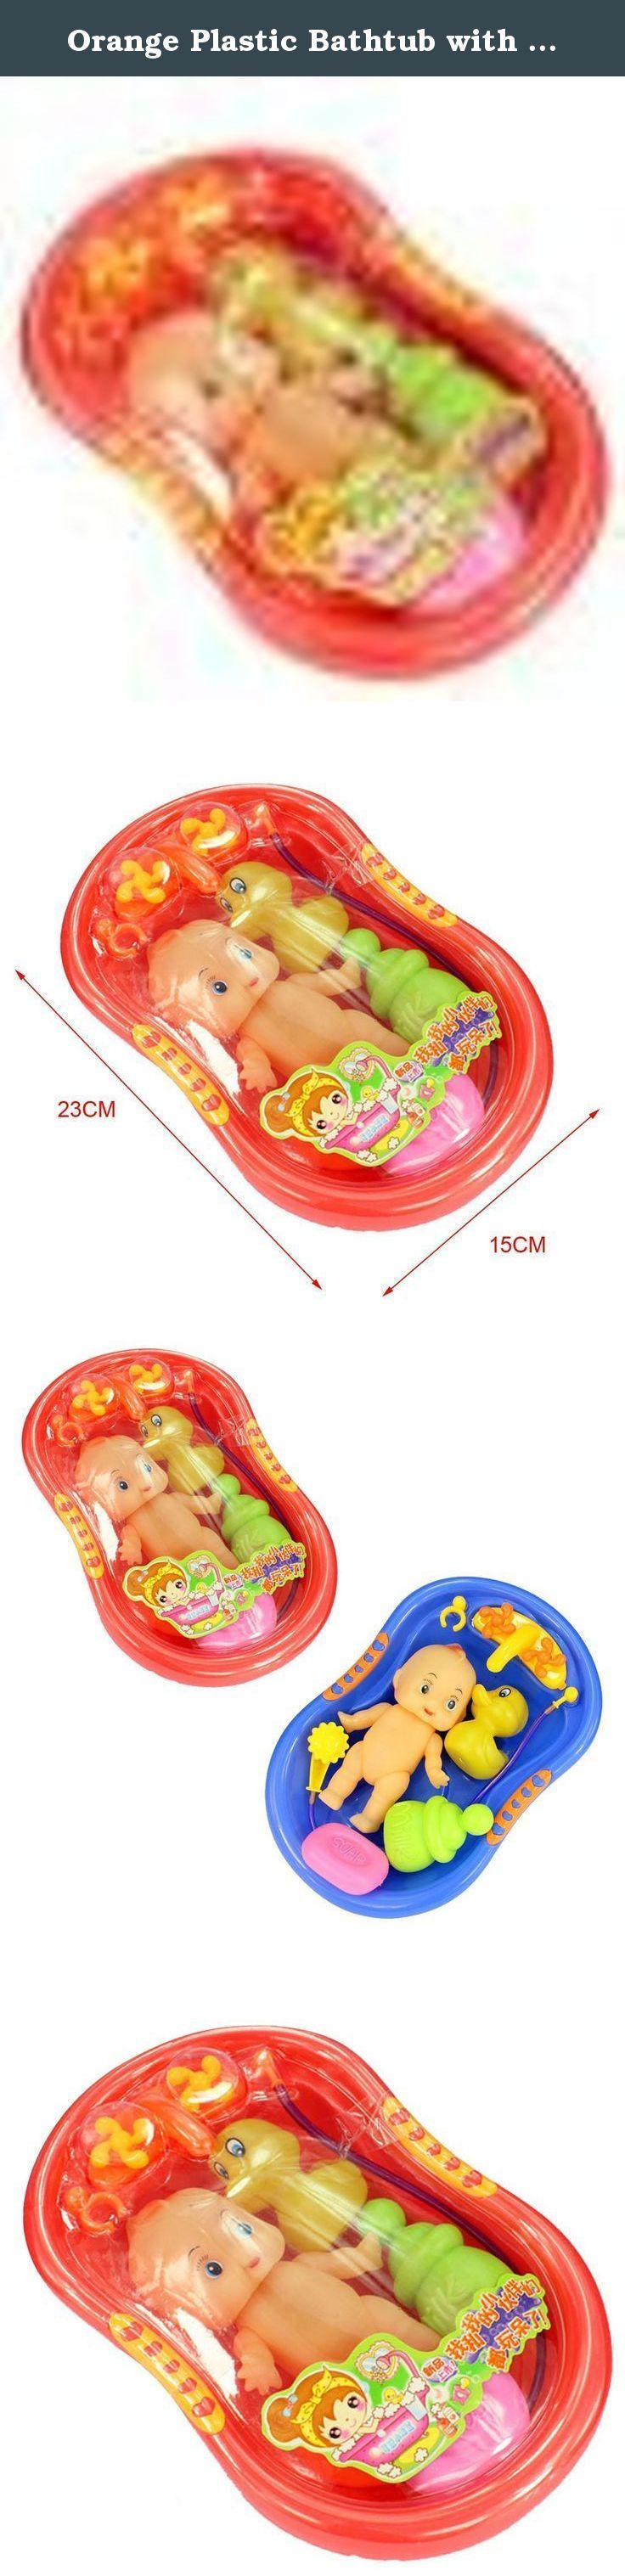 Orange Plastic Bathtub with Baby Doll Bath Time Toy Set. Description: Cute bathtub toy set with baby doll Made of light plastic & be able to float on water Pefect for children playing High degree of simulation Includes: Water tap, shower nozzle, baby doll, bathtub, soap, feeding bottle, and duck toy Material: Plastic Main Color: Orange Bathtub Size:23 × 15 cm Not suitable for kids under 4 years old Package Includes: 1 × Miniature Bathtub Set Note: Contains small parts, please prevent kids...